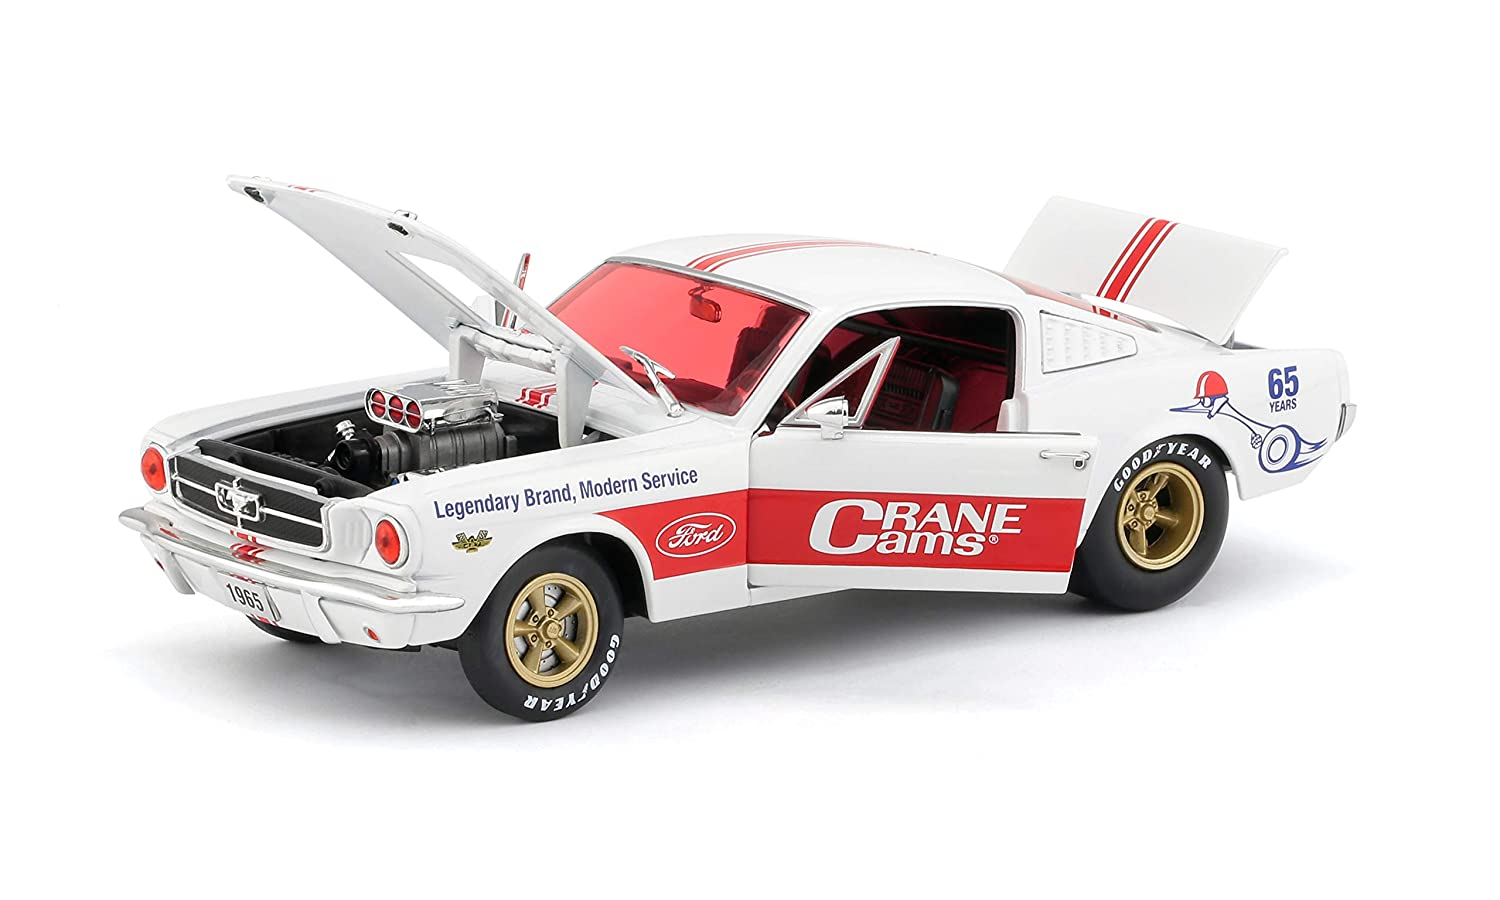 1965 ford mustang fastback 2 2crane cams white with red stripes limited edition to 5880 pieces worldwide 1 24 diecast model car by m2 machines 40300 68 a